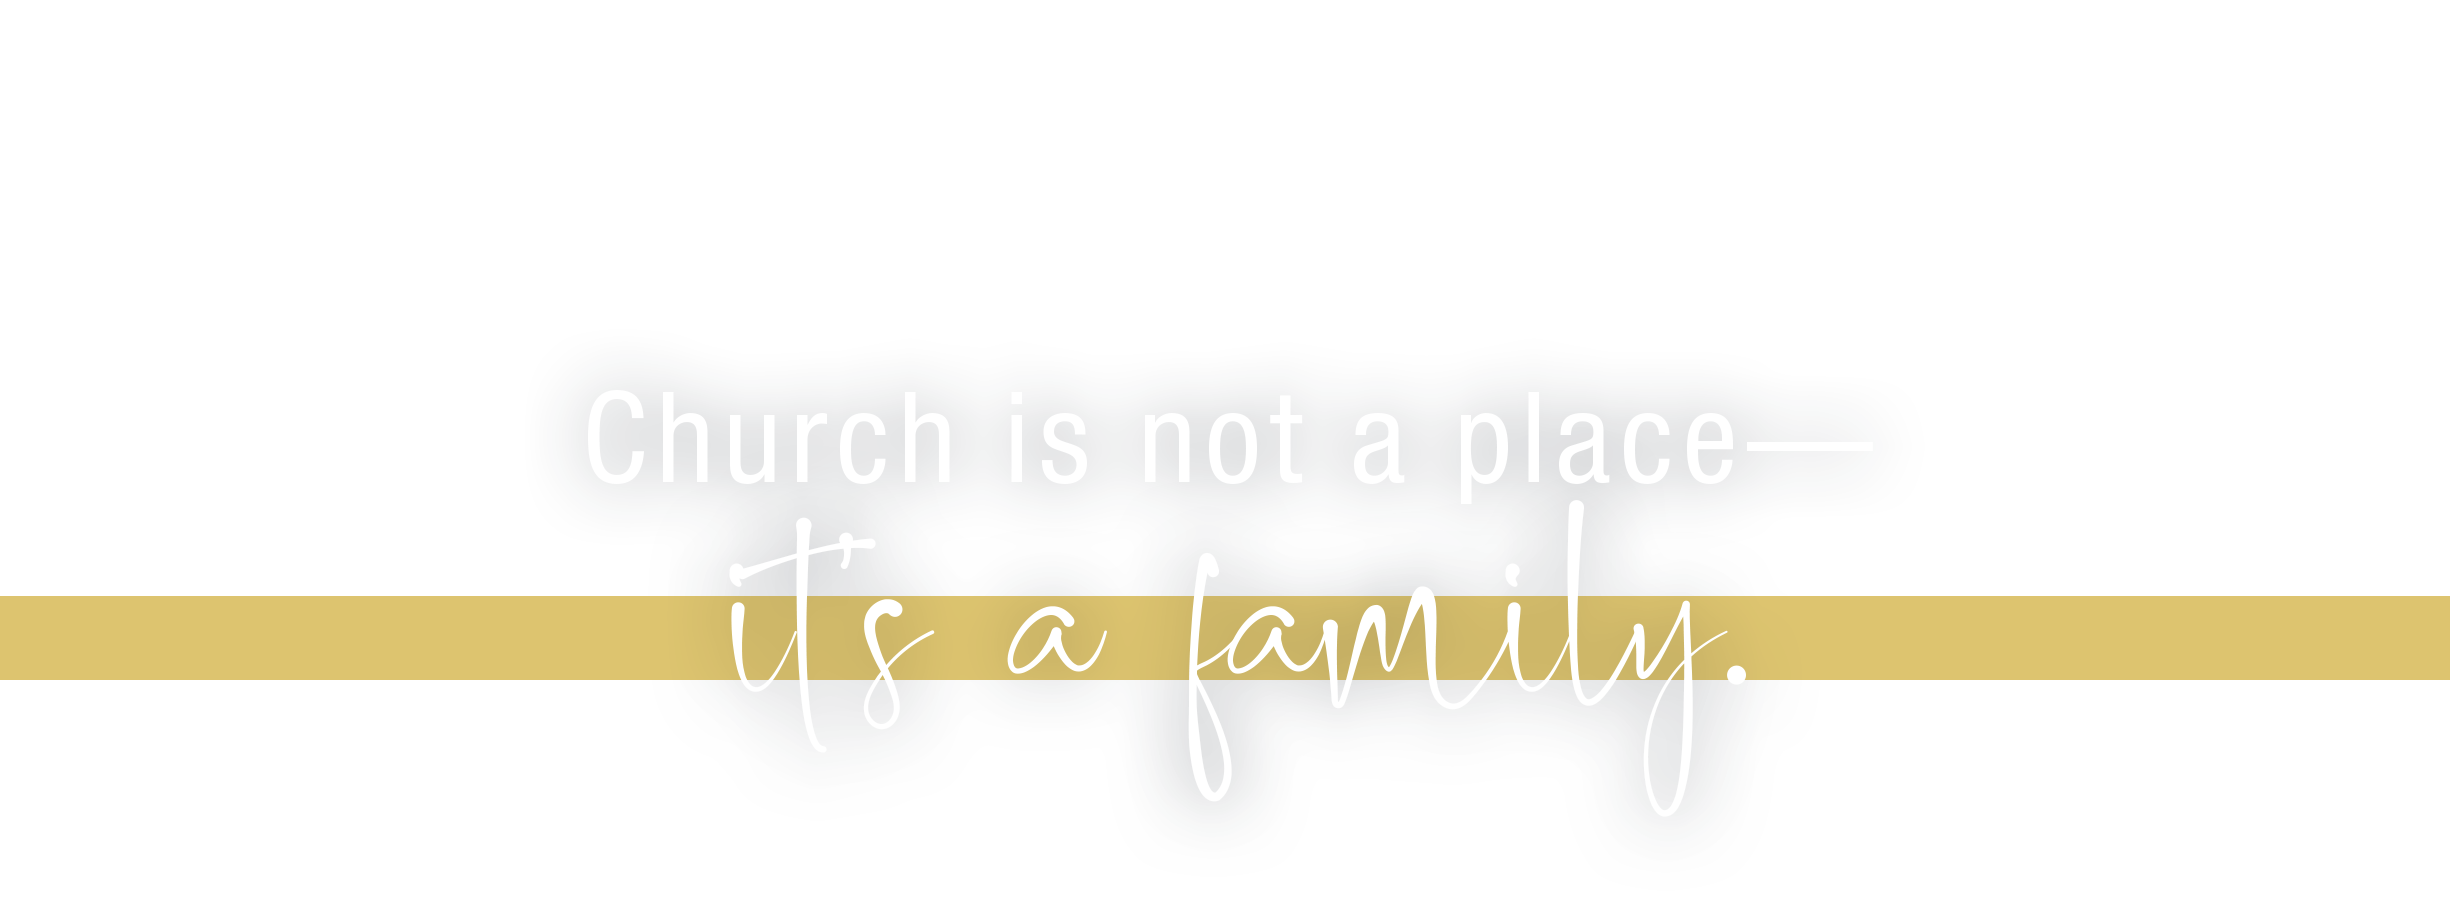 Church is not a place. It's a family.